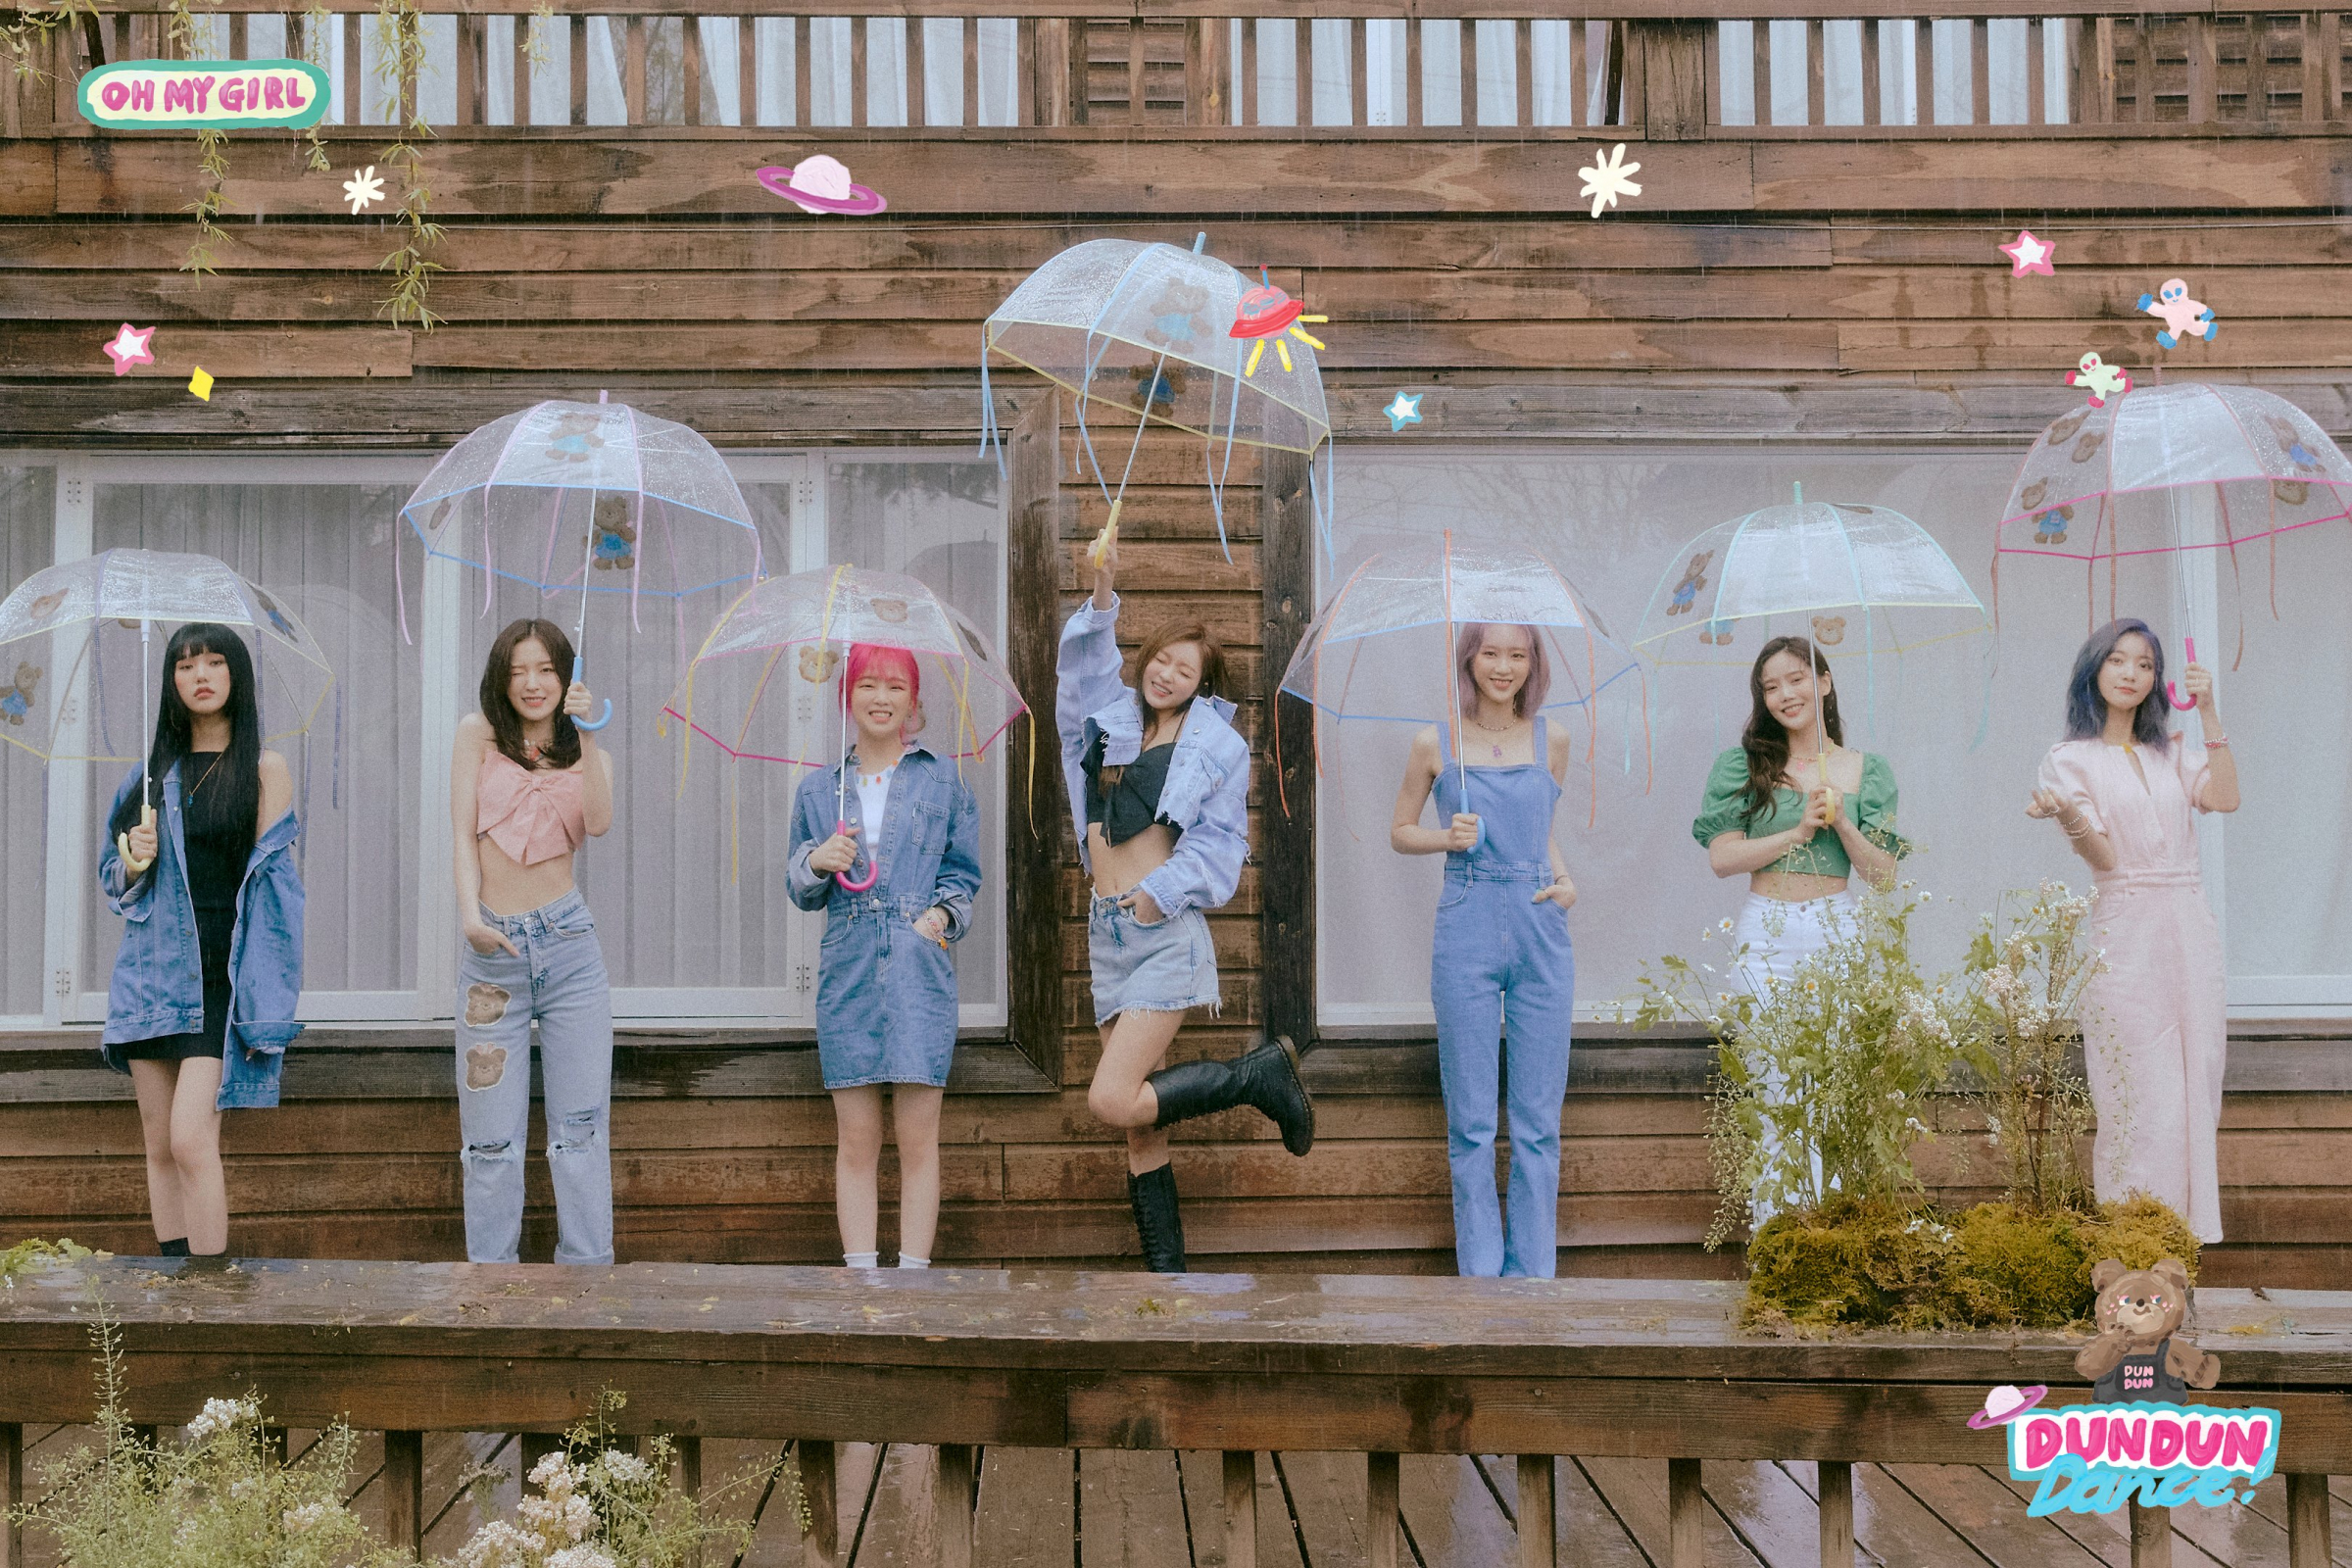 Oh My Girl Members Profile Updated: Who are They and Where